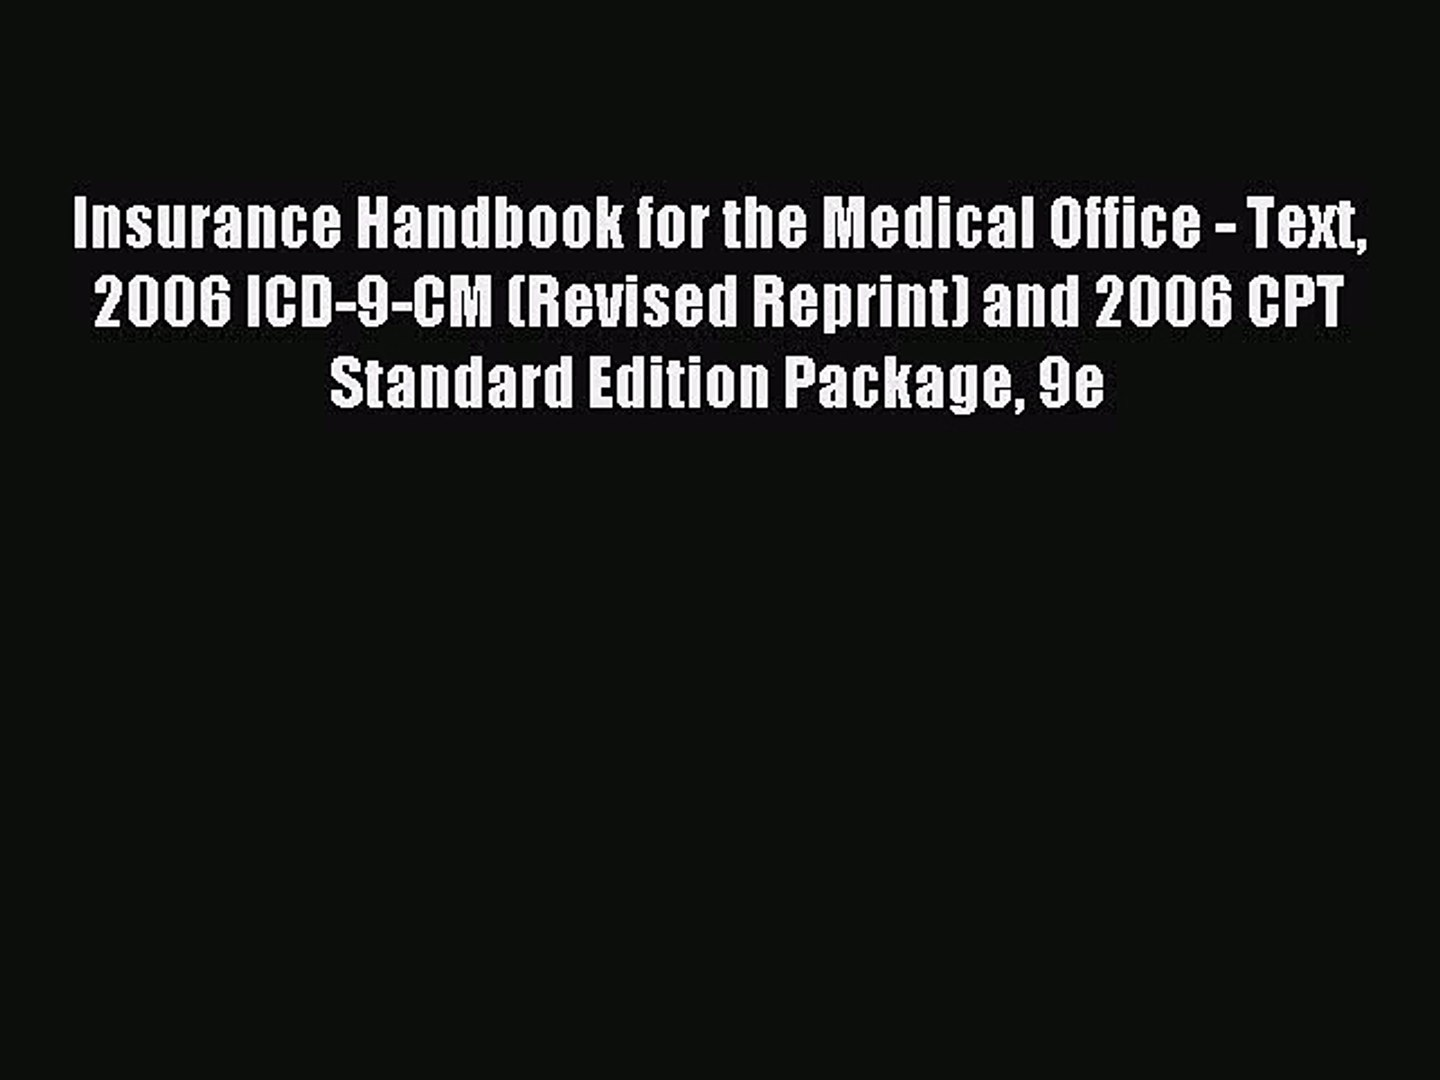 Read Insurance Handbook for the Medical Office - Text 2006 ICD-9-CM (Revised Reprint) and 2006